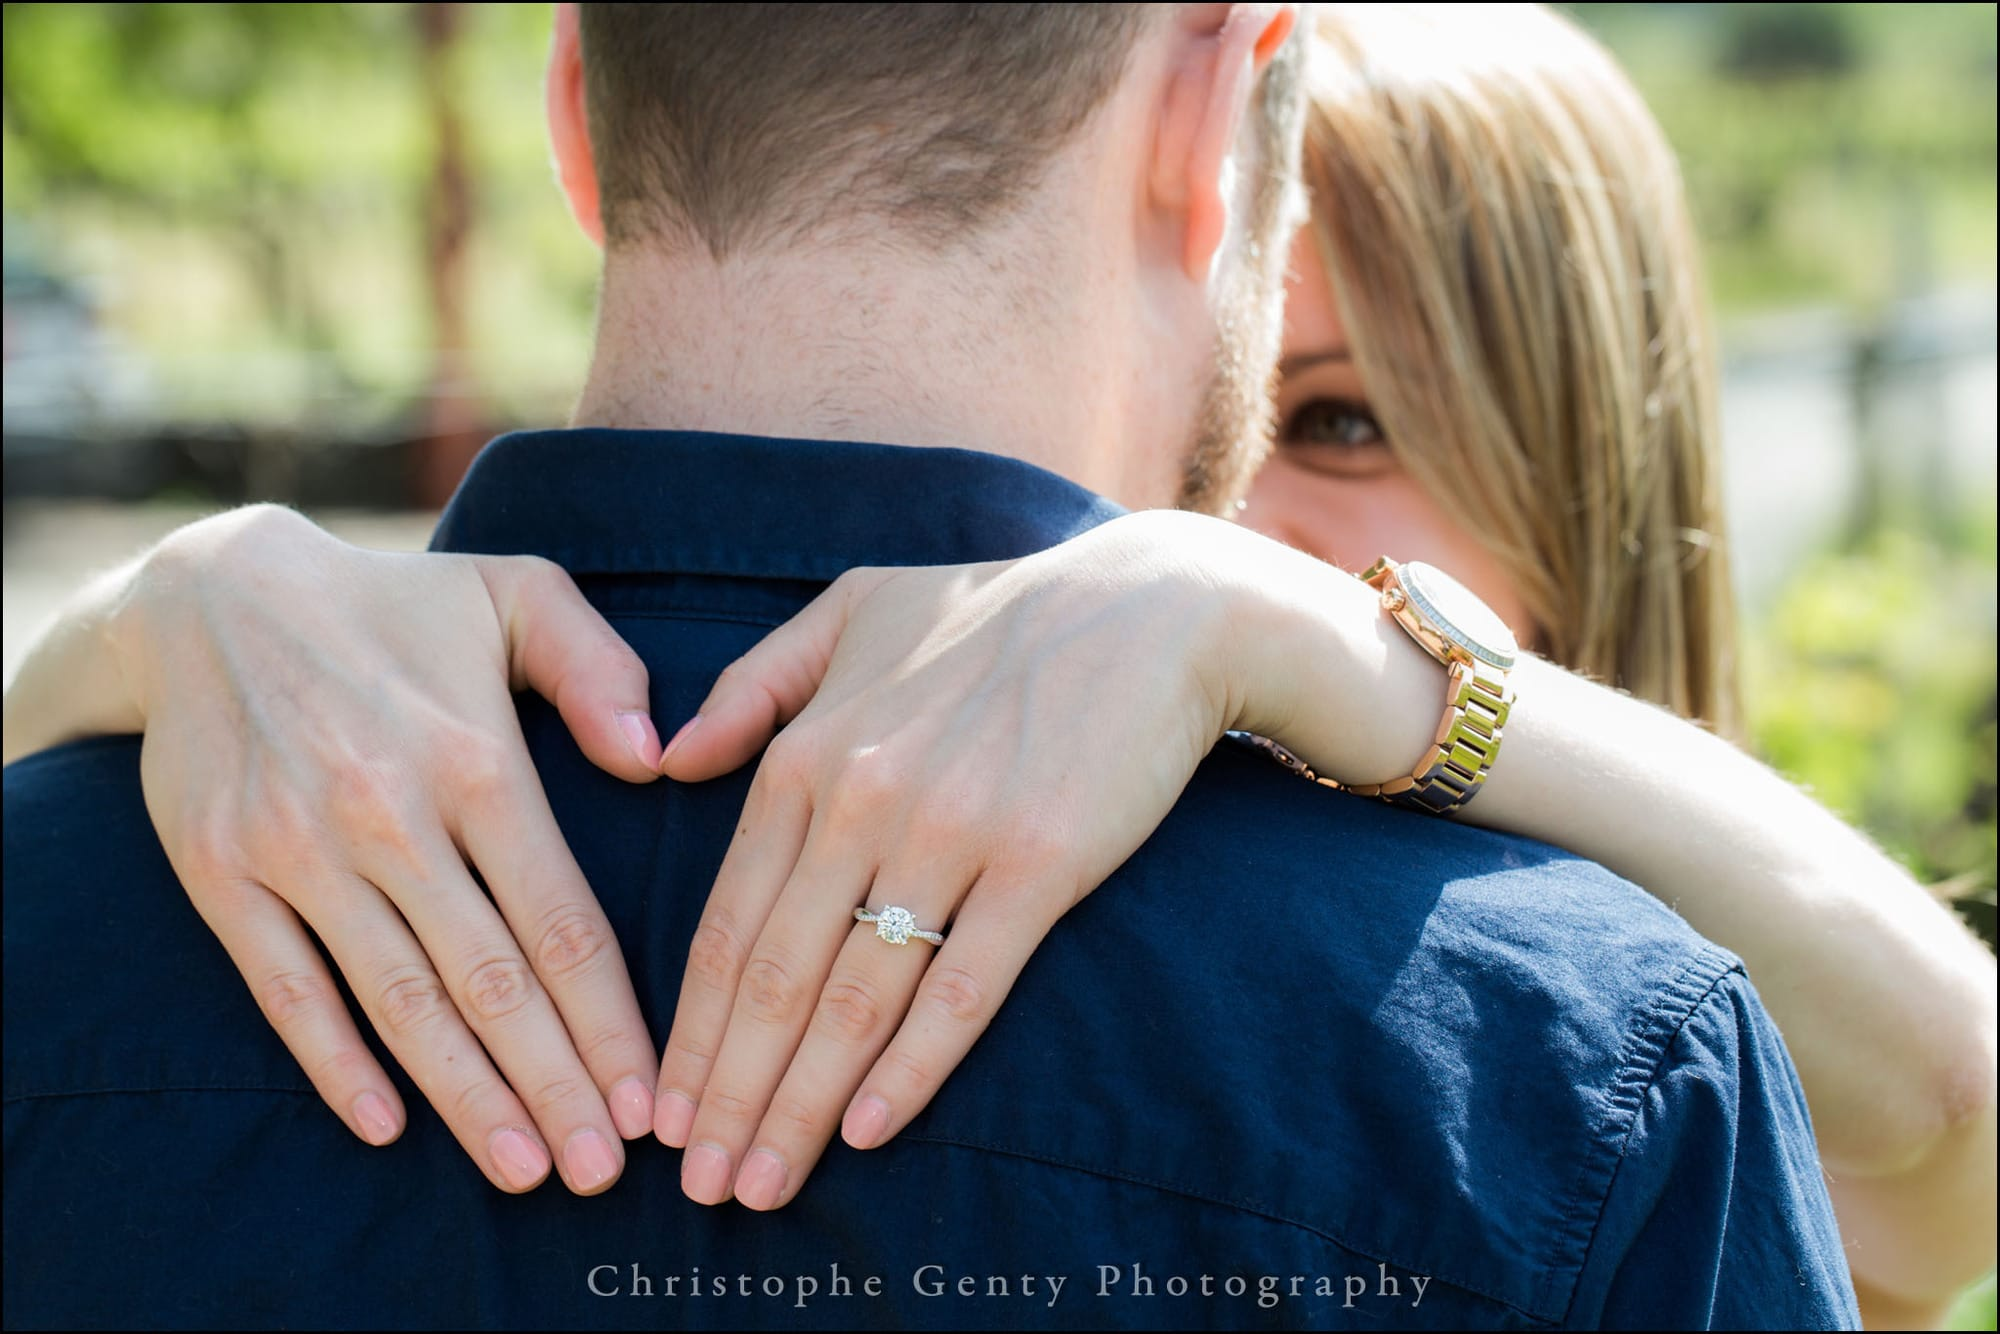 Marriage Proposal Photography in the Napa Valley - Tudal Winery, St Helena, CA